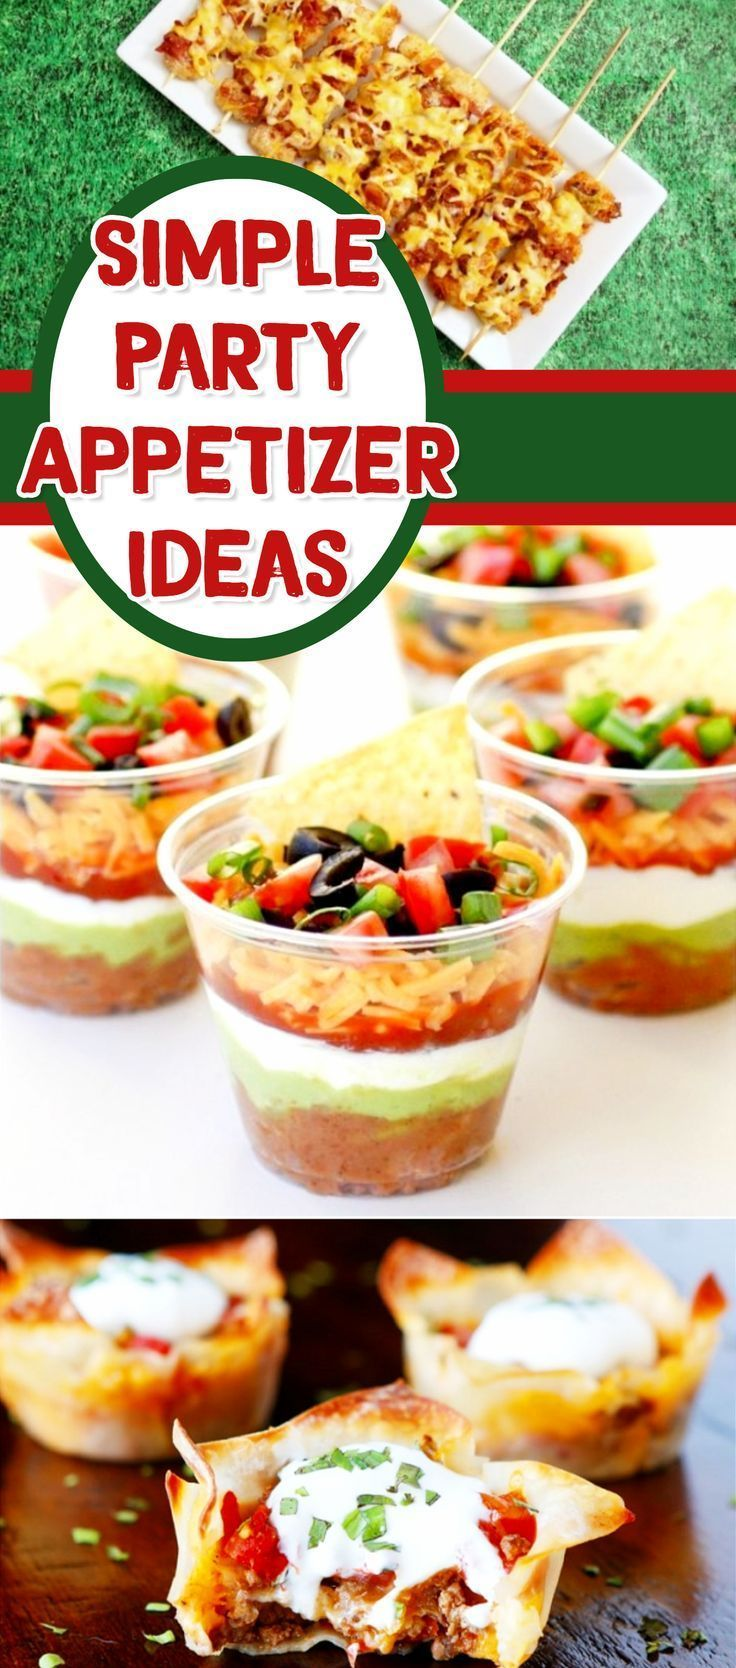 Super bowl sunday snack food and appetizer ideas party appetizers easy appetizers for a crowd appetizer recipes with pictures easy appetizers forumfinder Image collections